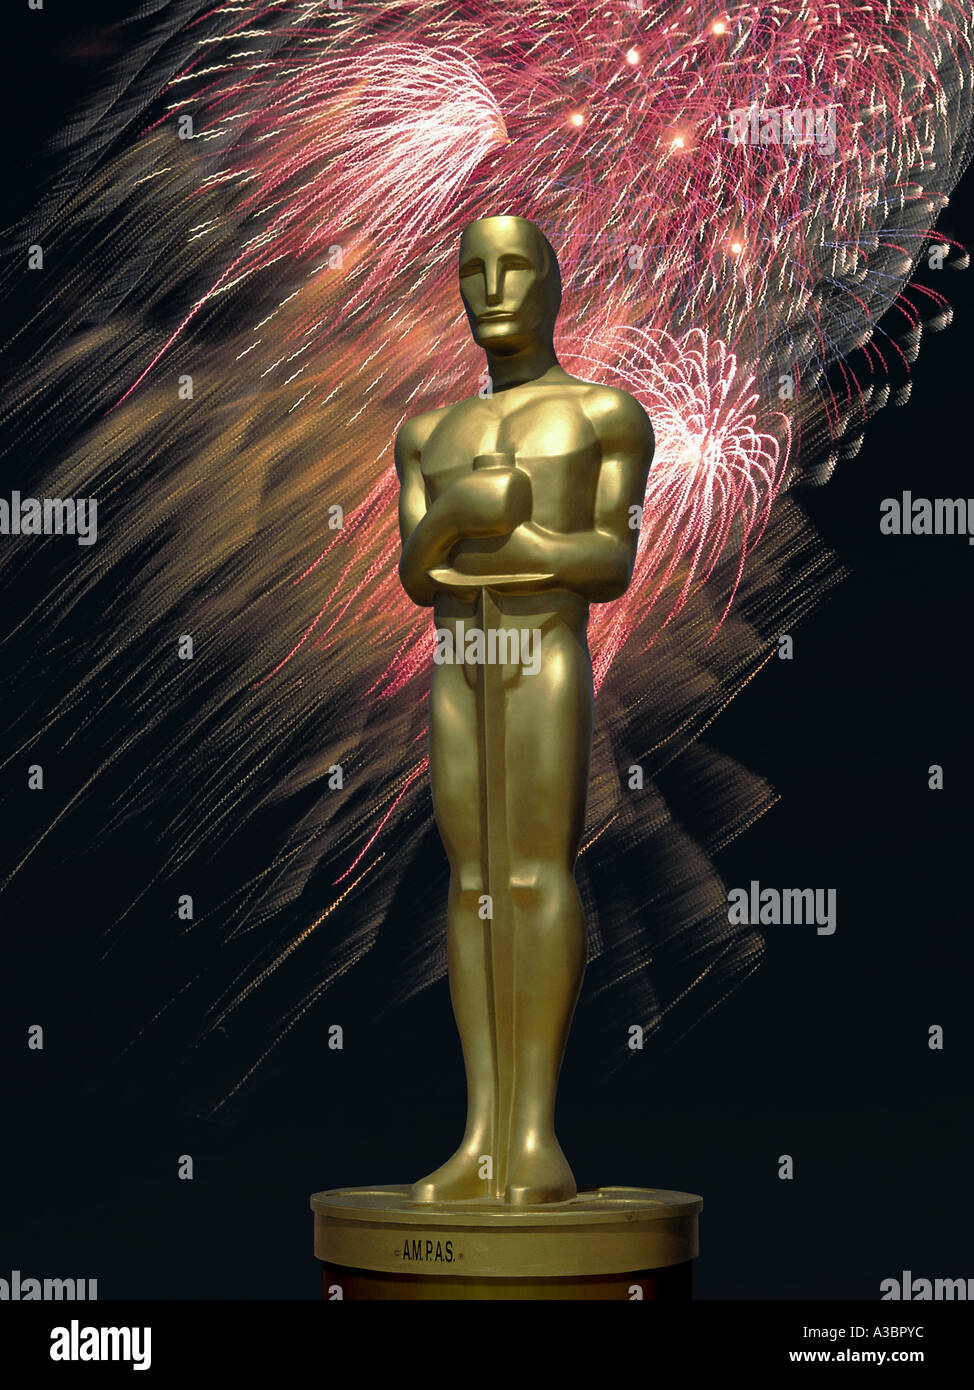 Pg1 besides Stock Photo Angled Full View Of Oscar Statue Against A Backdrop Of Fireworks 6134843 as well G 6mft41crohb9lgeifb59va0 besides Movies further Keats Poems Published In 1820. on oscar golden statue symbolism